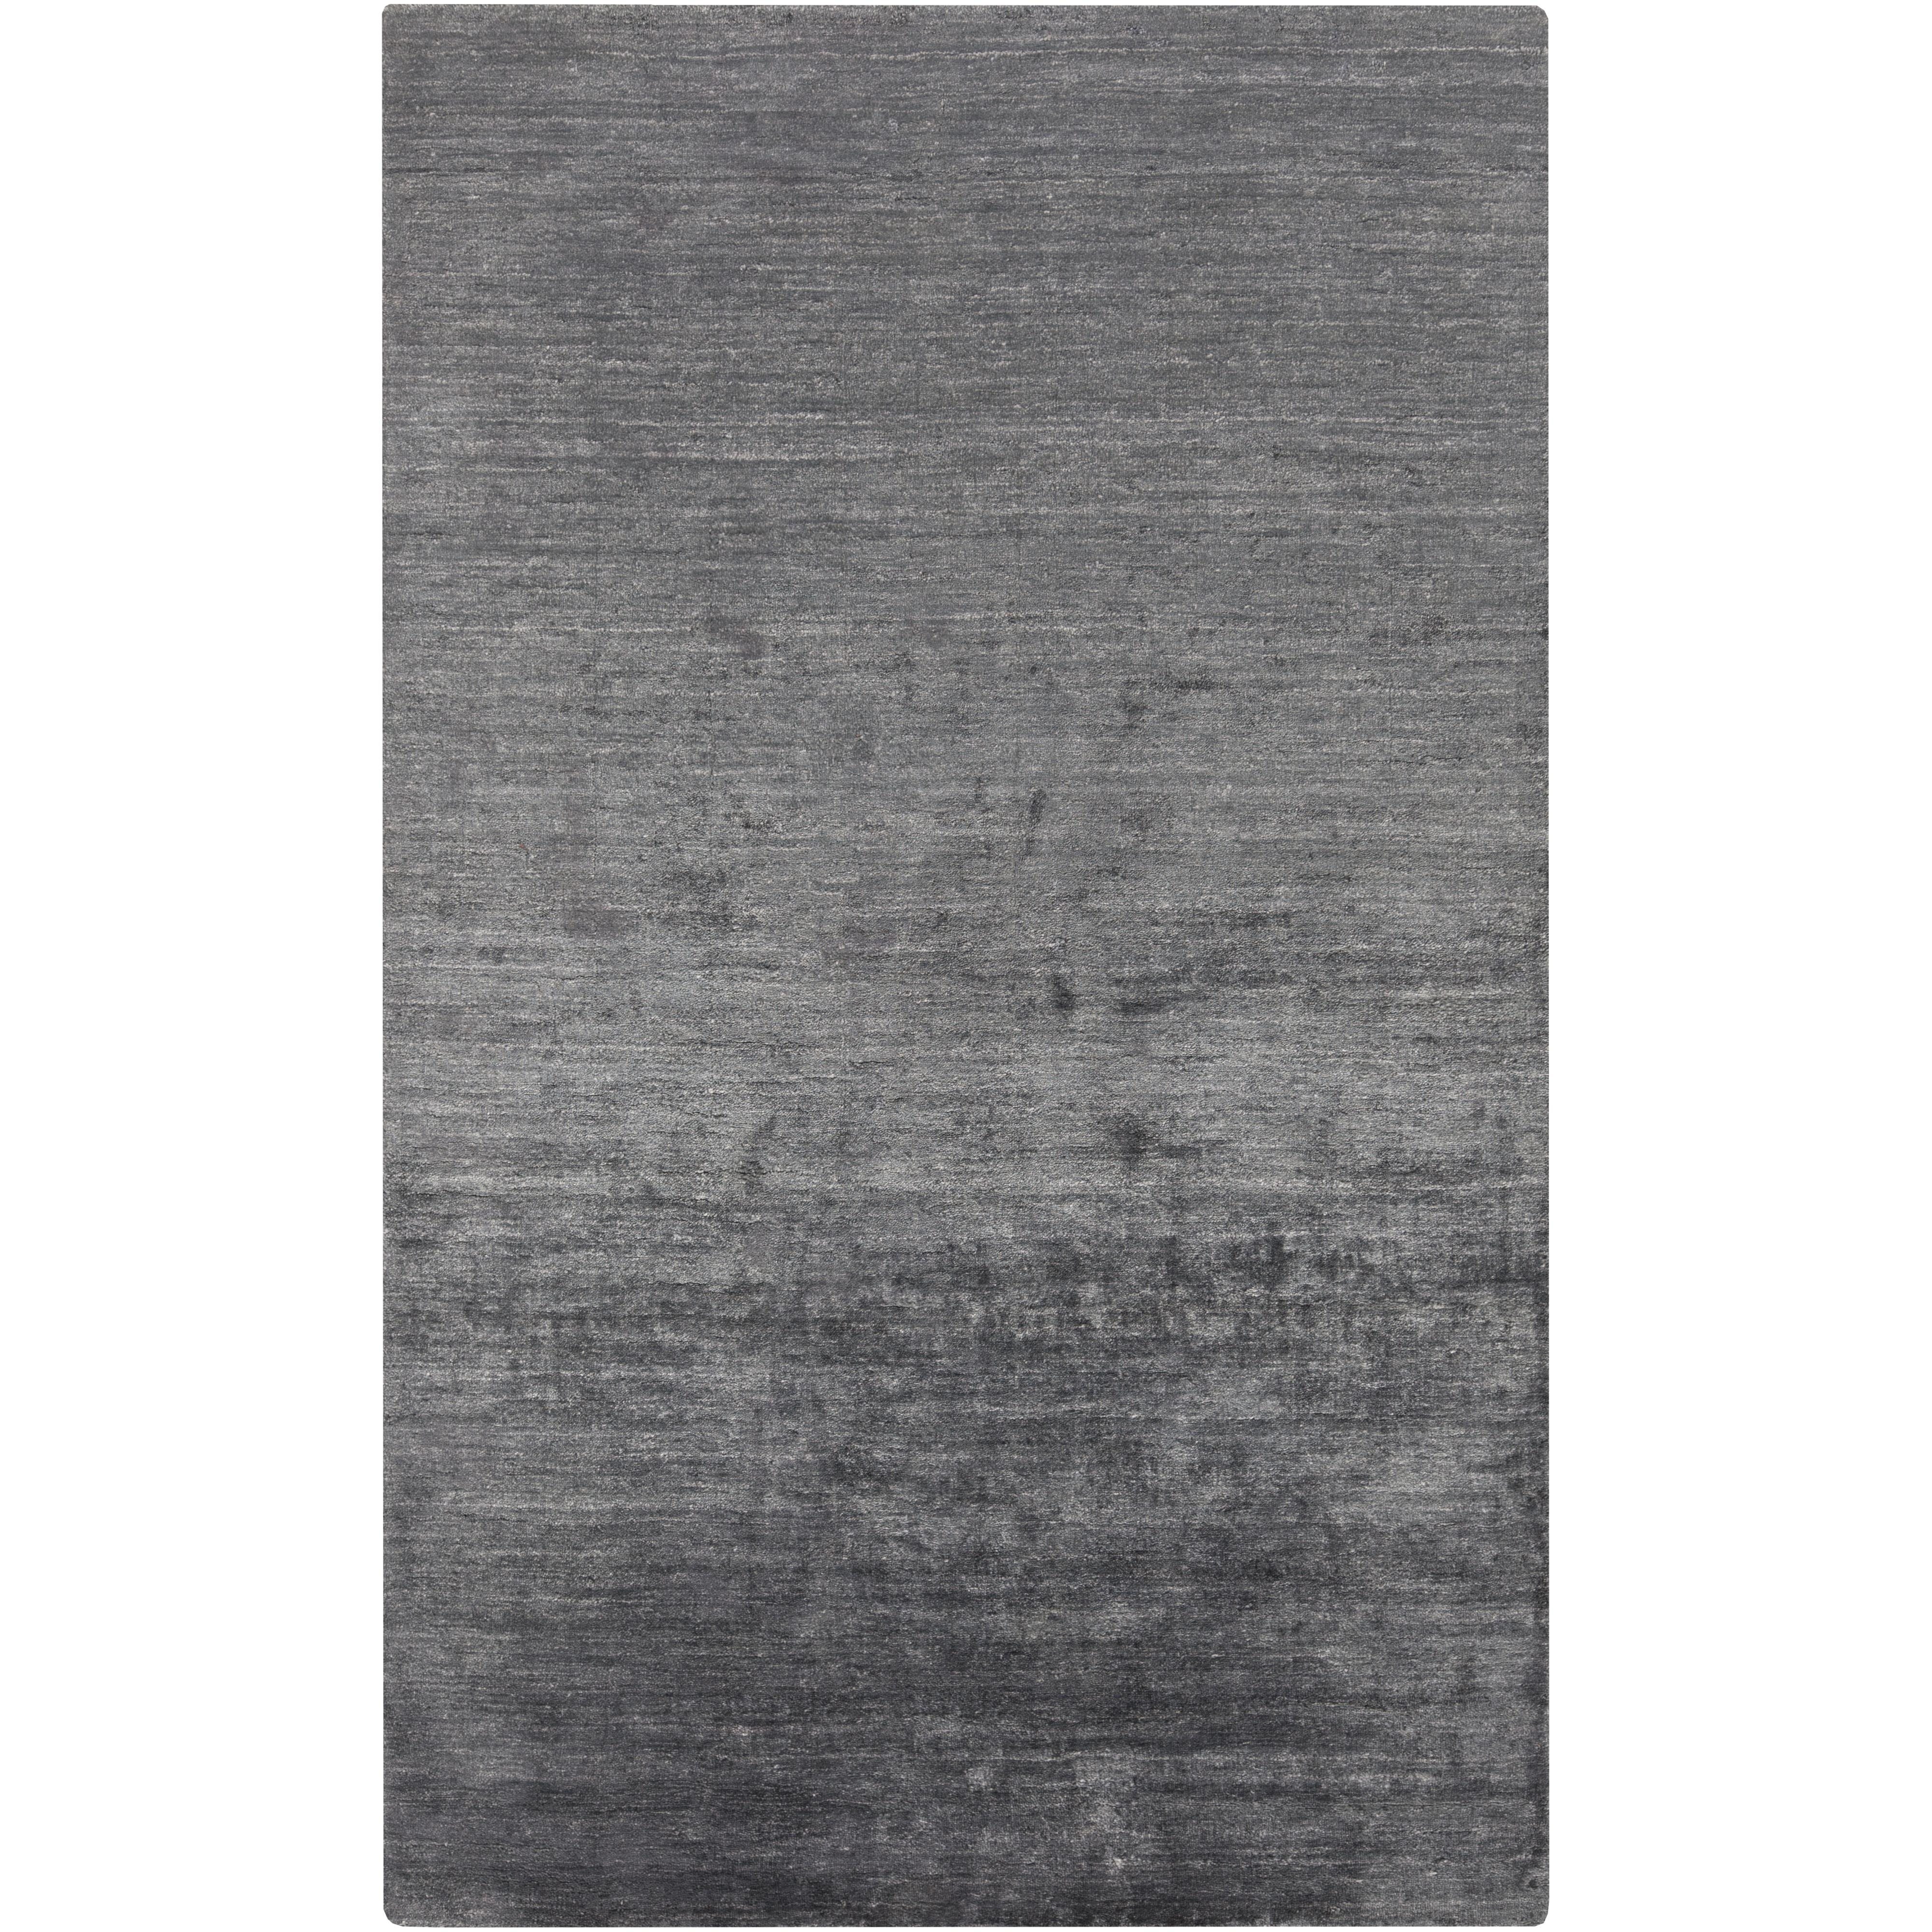 Surya Rugs Haize 5' x 8' - Item Number: HAZ6010-58